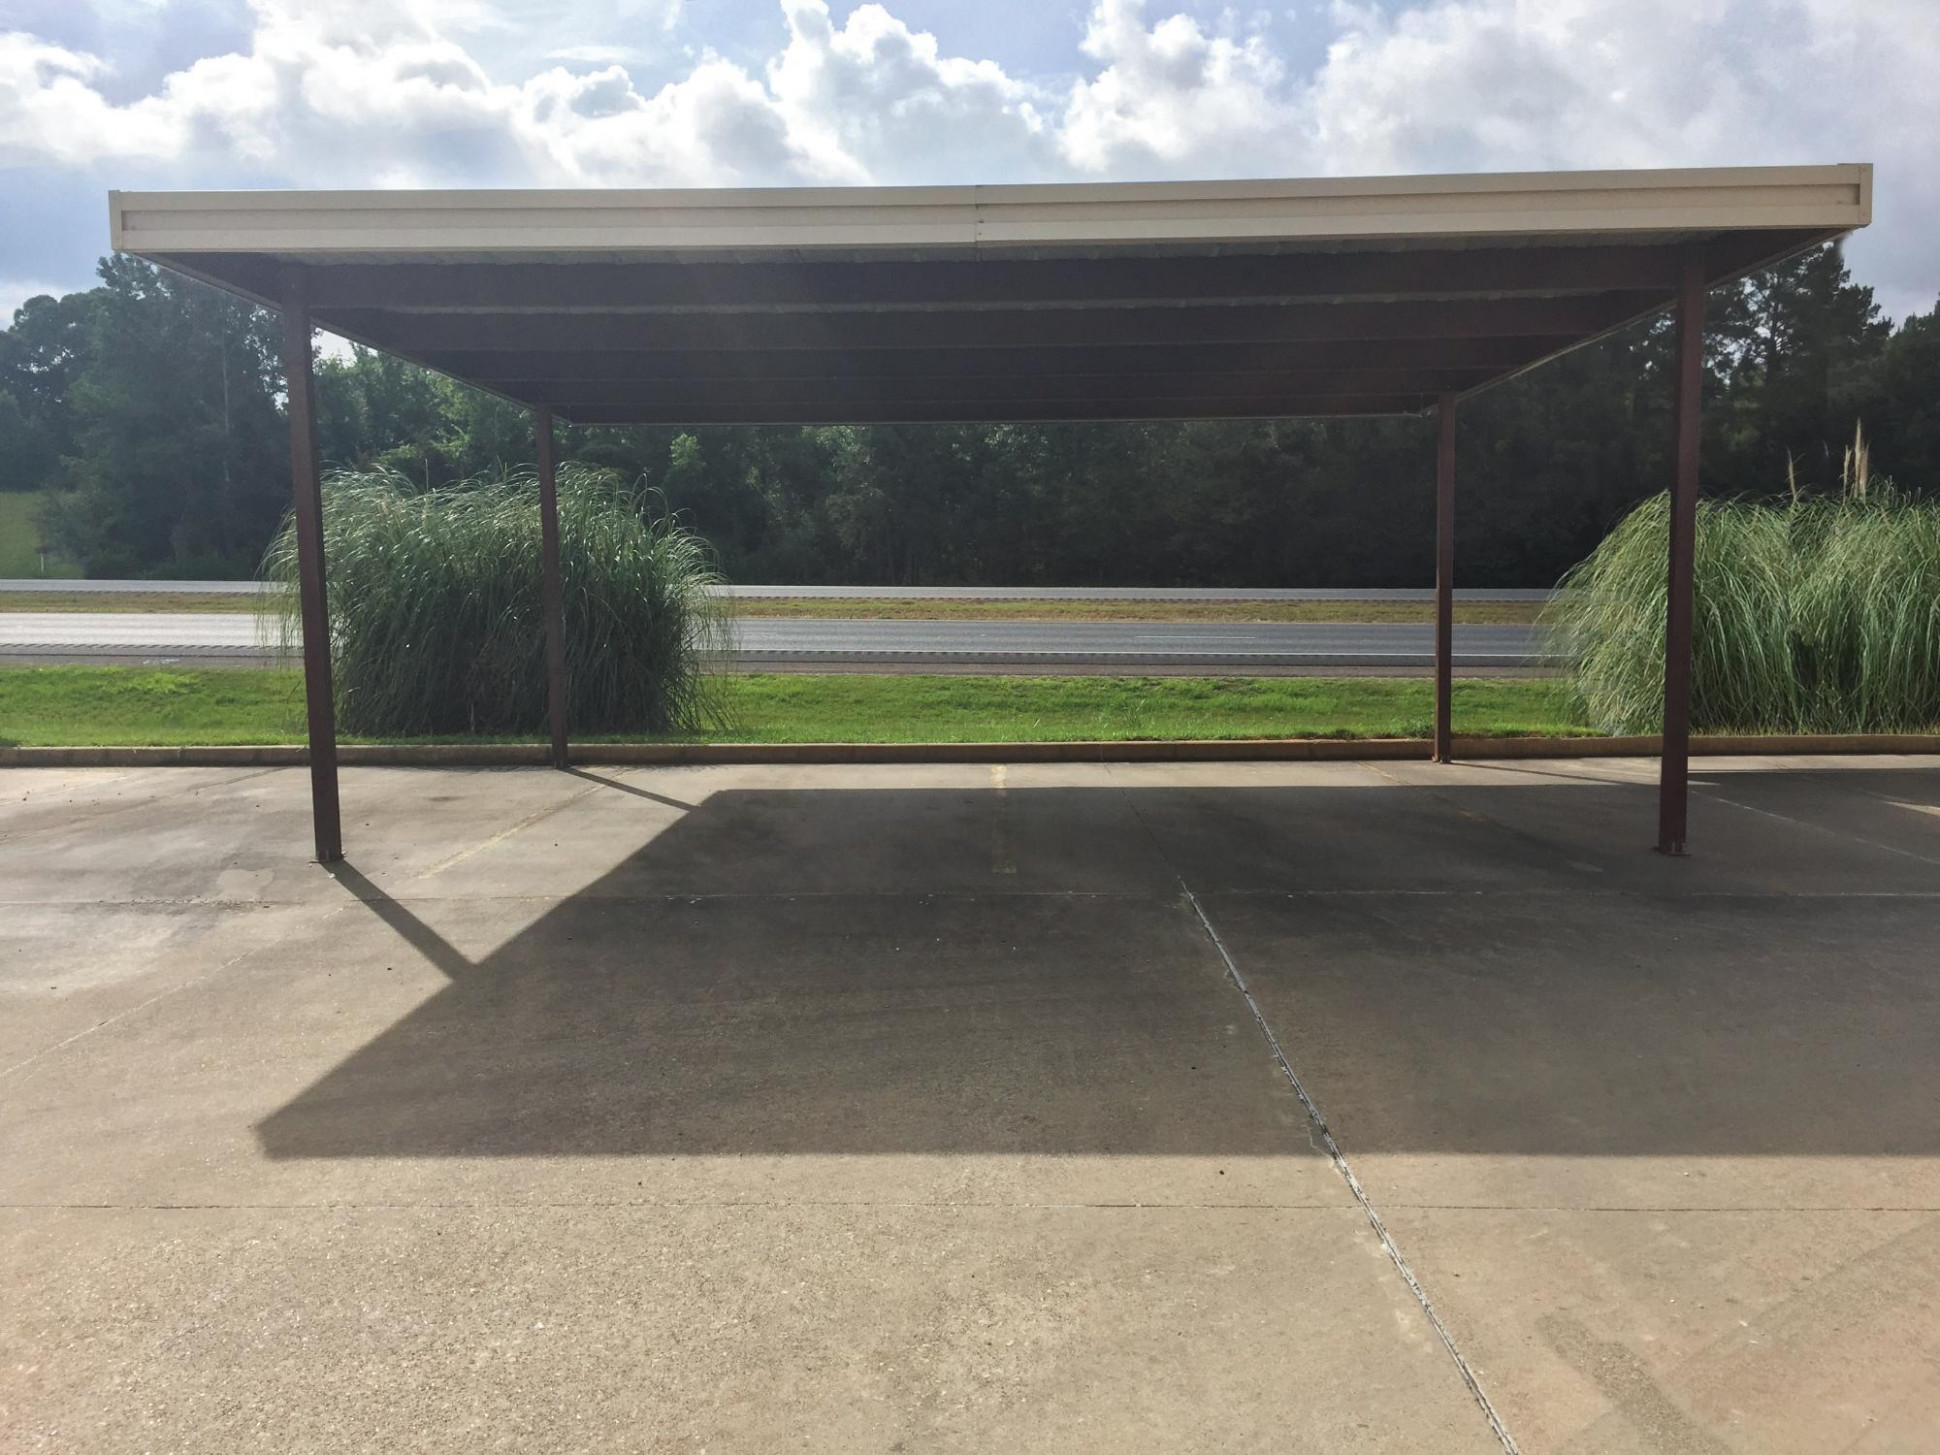 Carport 13' X 13' Mueller, Inc Steel Carport Ideas